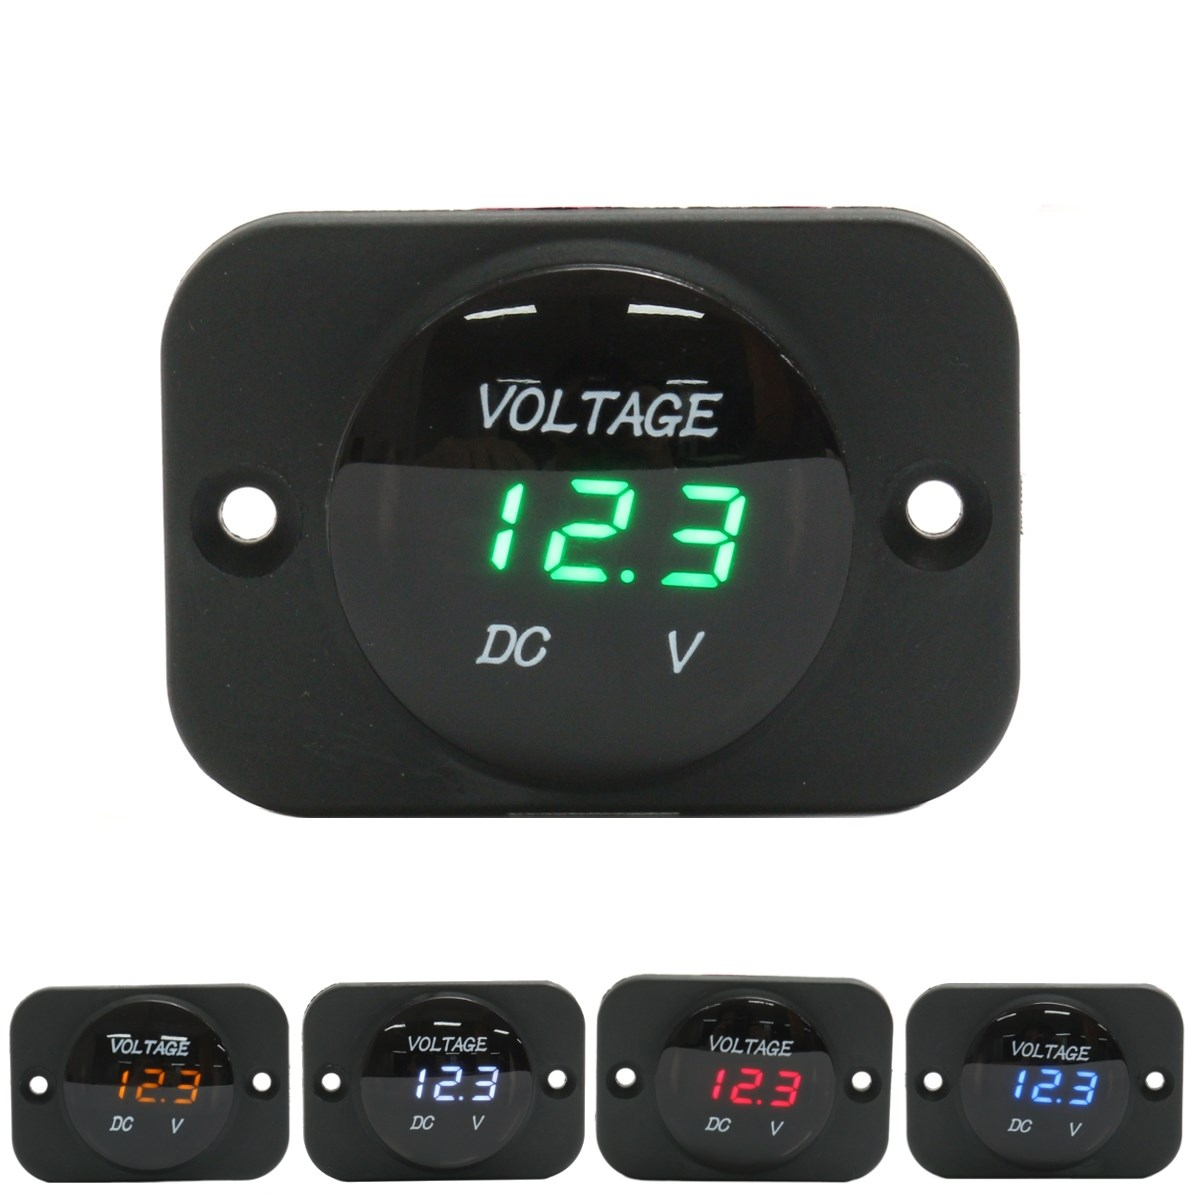 DC 12-24V Waterproof Car Boat Motorcycle LED Voltmeter Digital Display Volt Voltage Meter Gauge Durable Quality motopower grey 12v smart digital battery tester voltmeter alternator analyzer with lcd and led display for car motorcycle boat